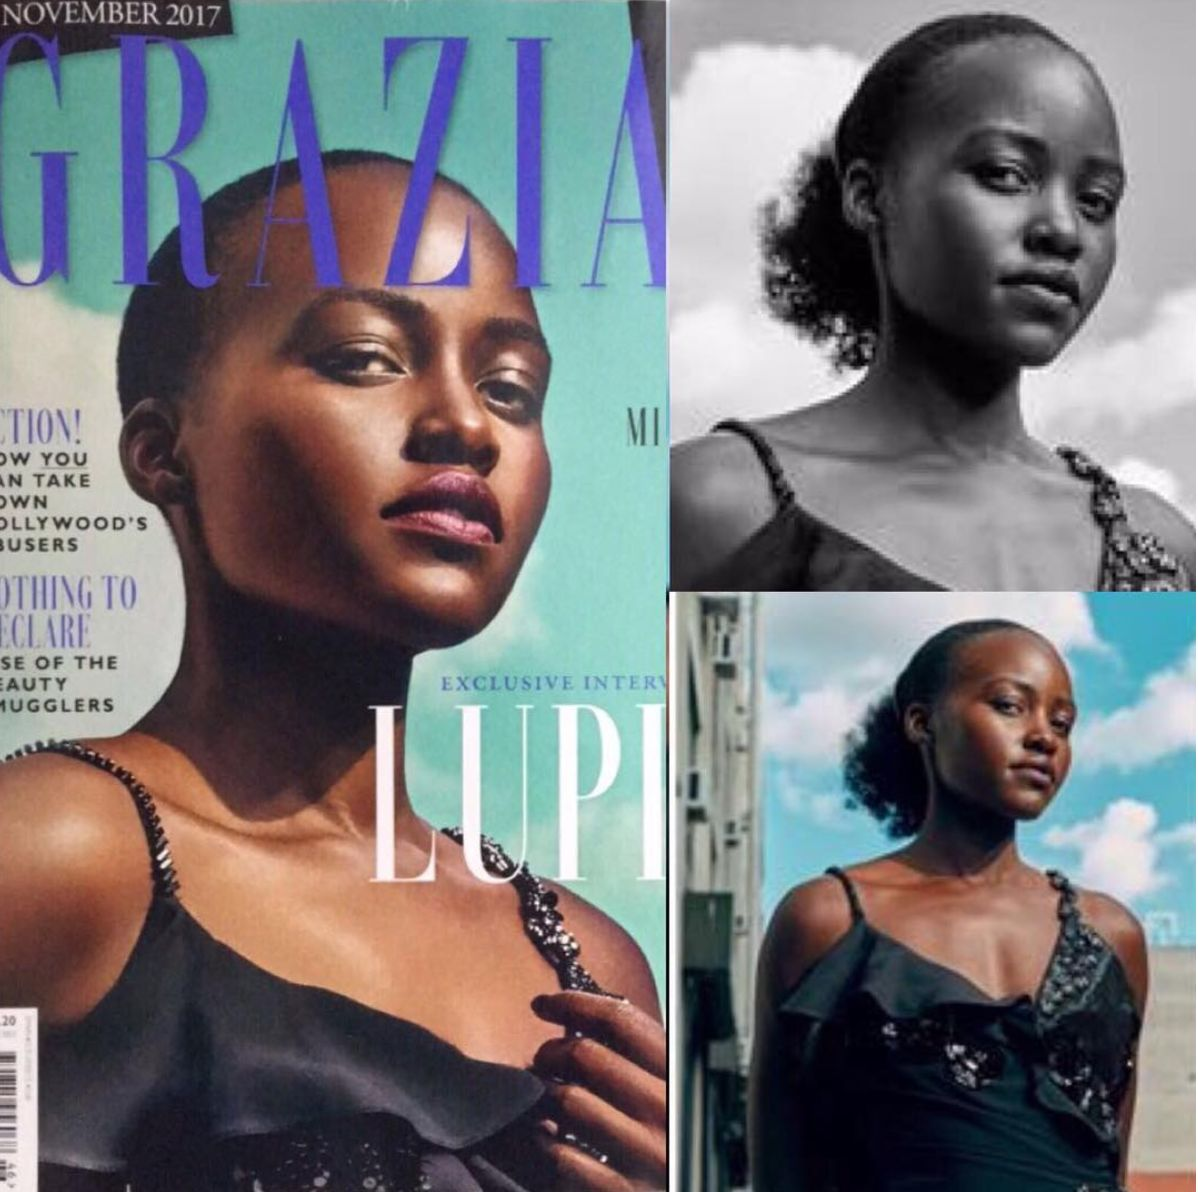 Photographer An Le Responds To Lupita Nyong'o's Criticism Of His Grazia